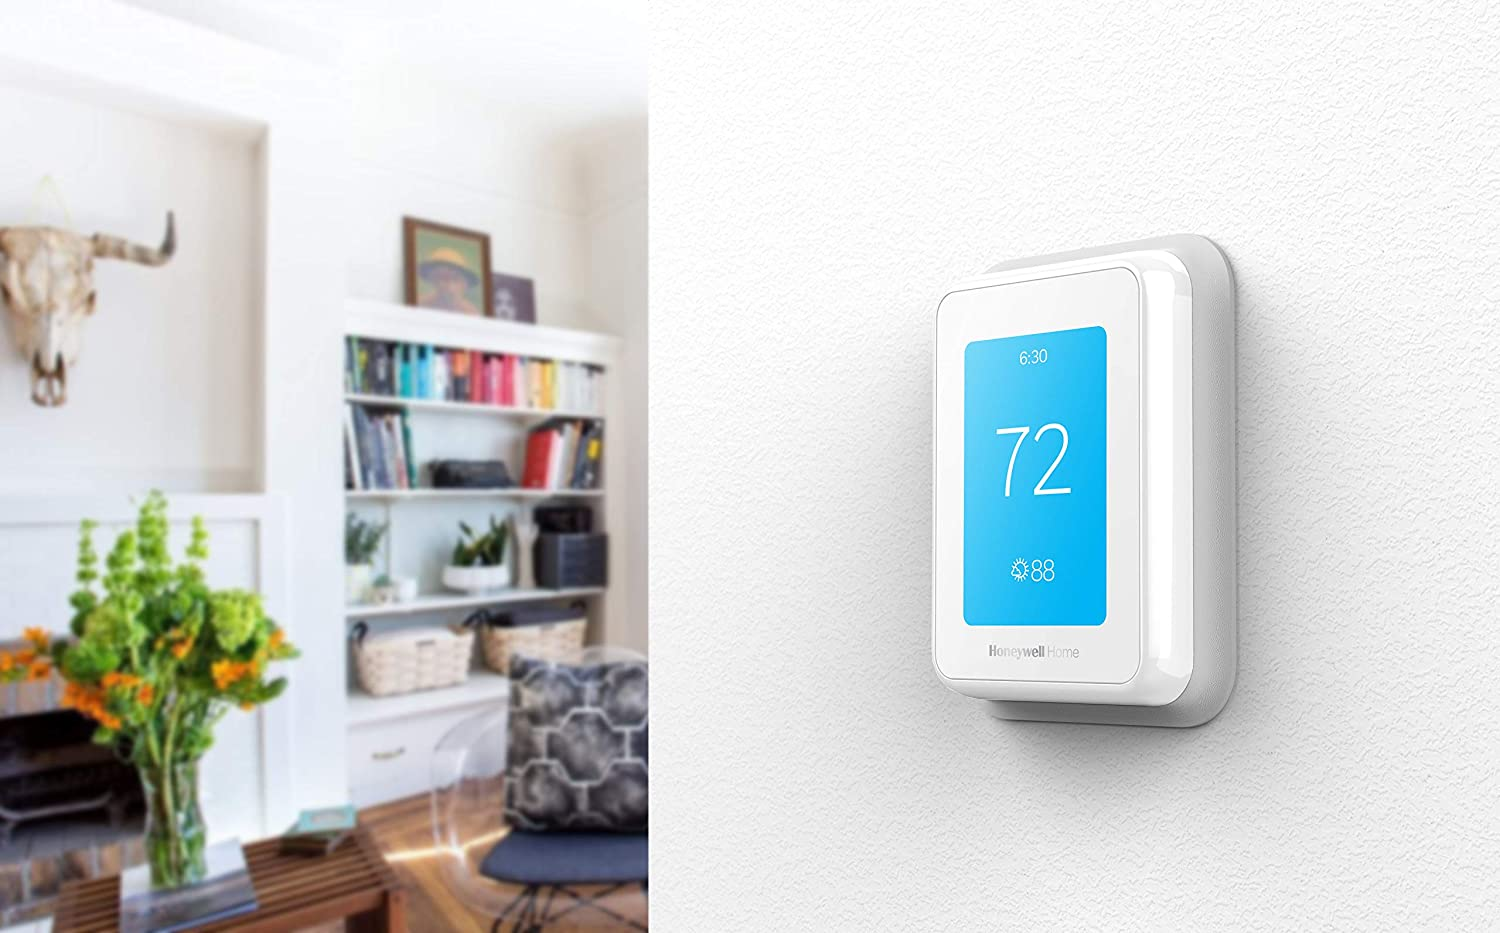 Smart Room Sensor Ready Alexa and Google Assist RCHT9510WFW2001 Honeywell Home T9 WIFI Smart Thermostat Touchscreen Display